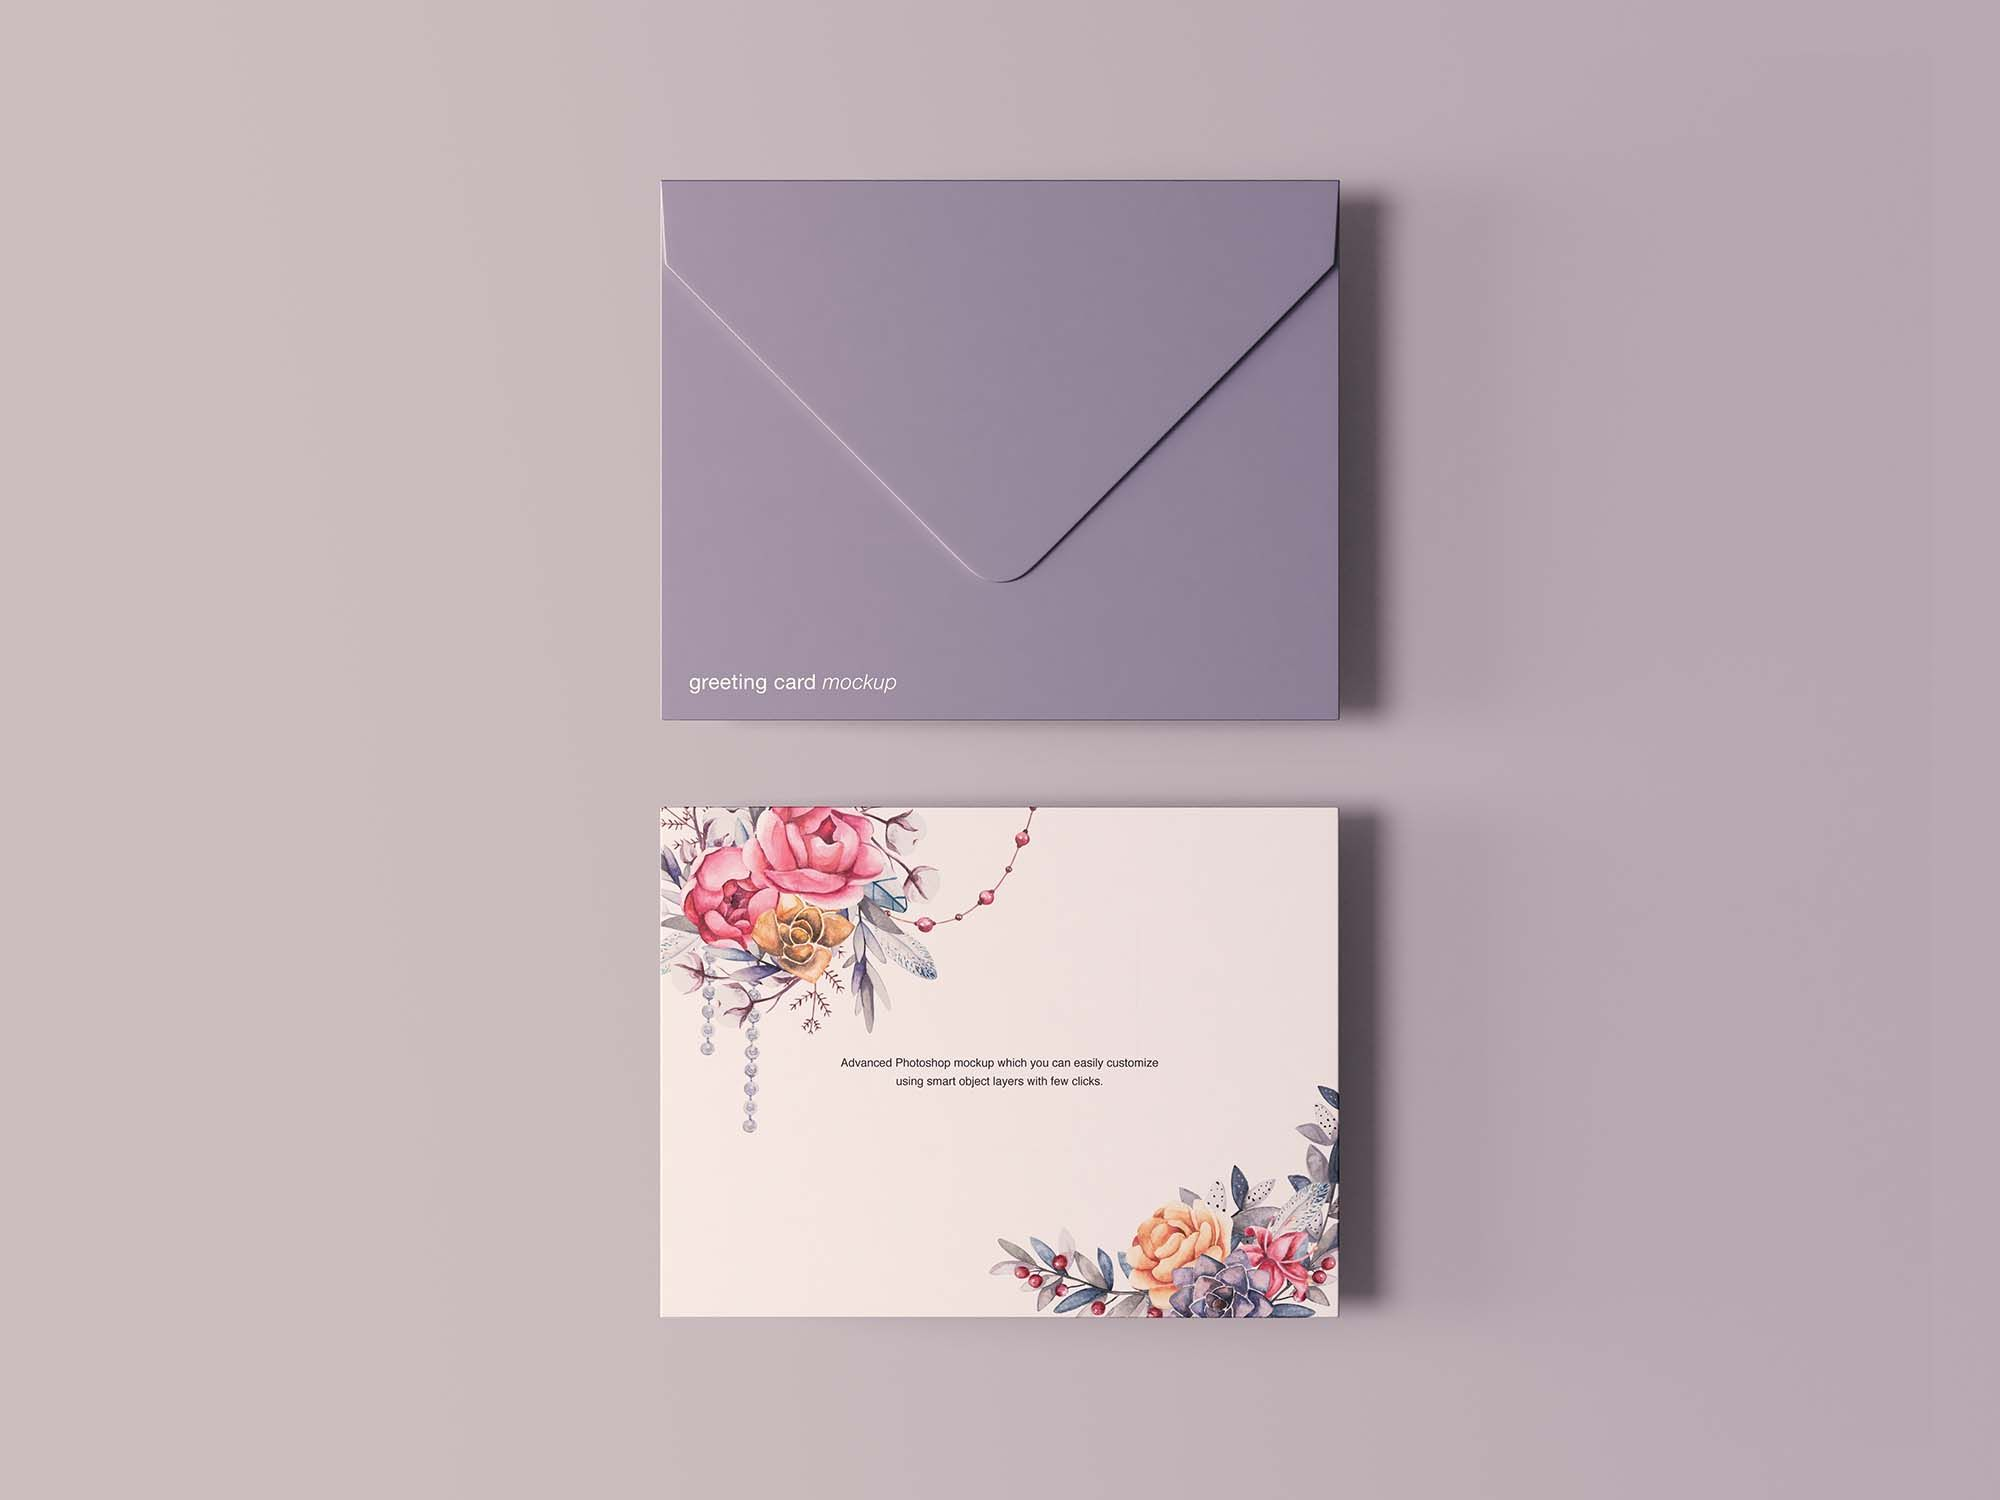 Free Greeting Card With Envelope Mockup Psd Free Greeting Cards Birthday Card Template Free Design Resources